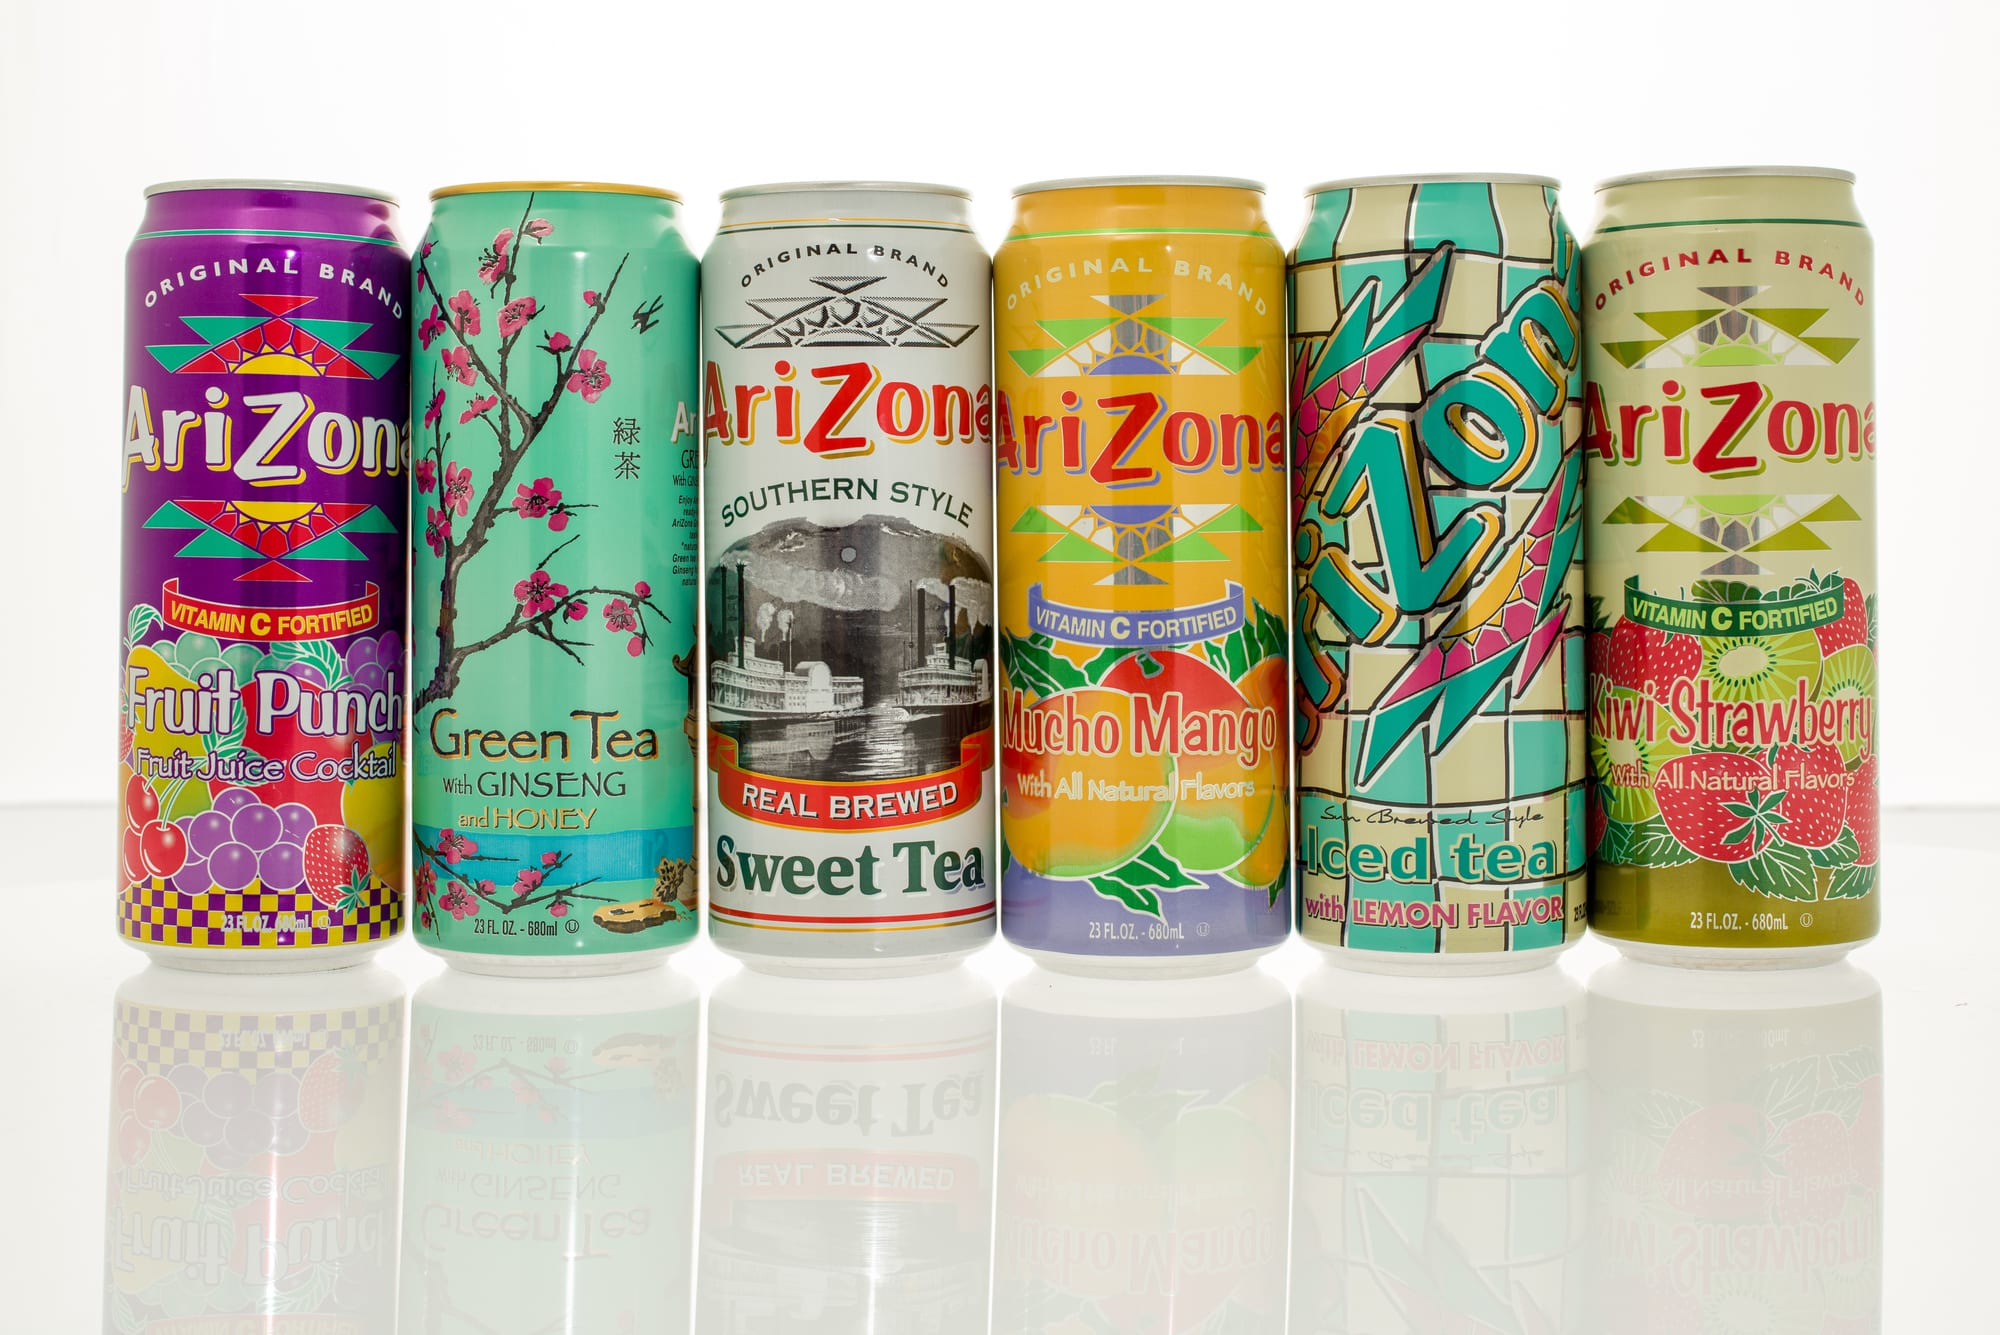 Arizona Beverages Partners With Dixie Brands to Make THC-Infused Products